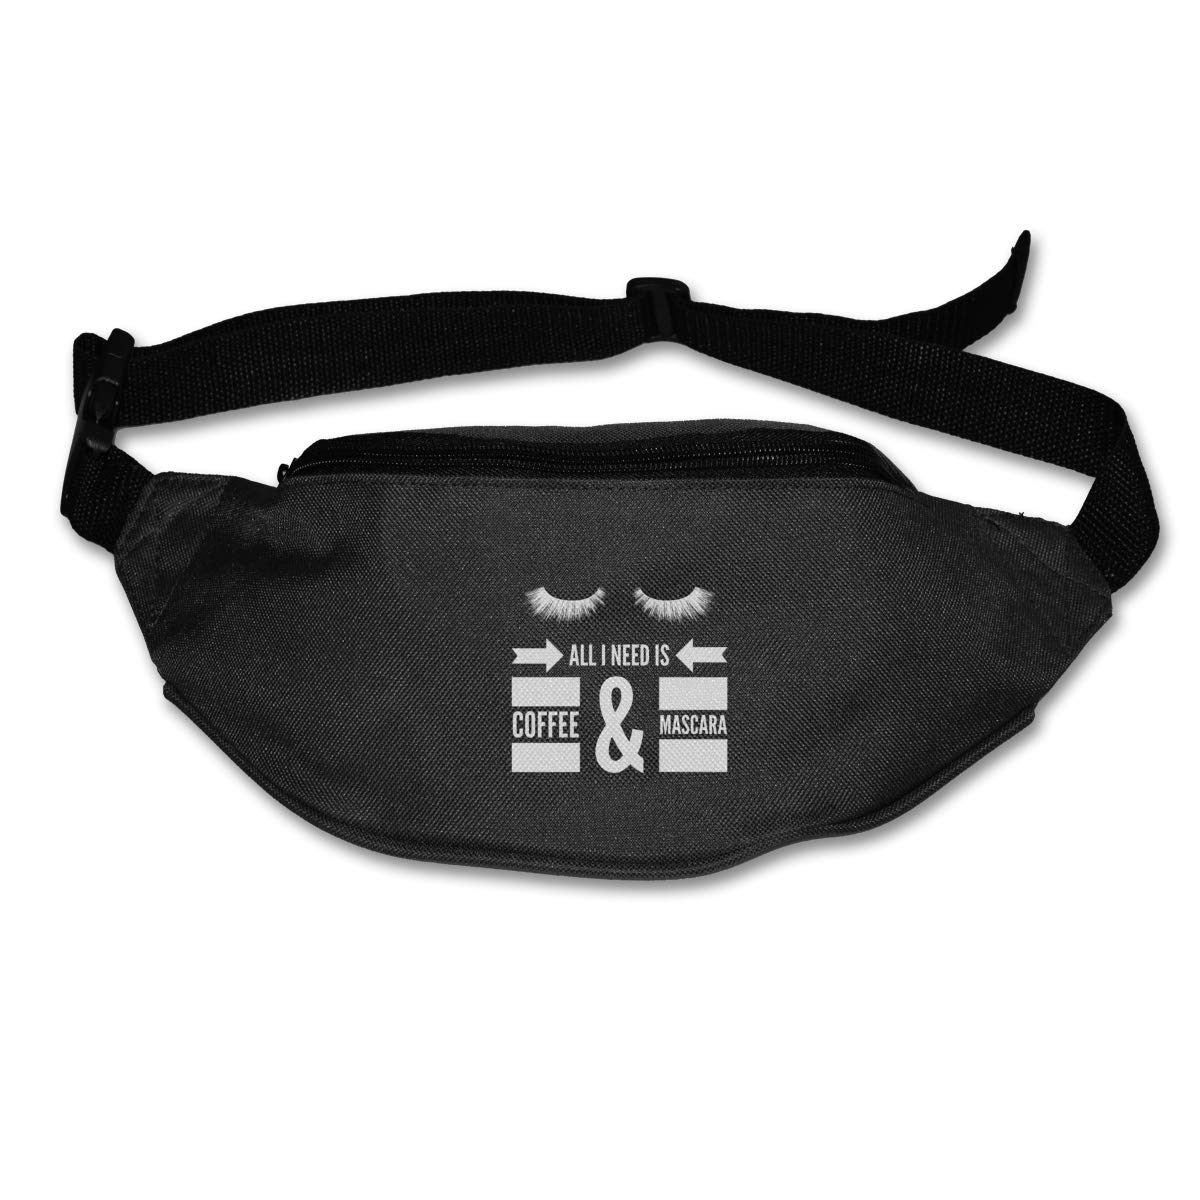 All I Need Is Coffee And Mascara Sport Waist Bag Fanny Pack Adjustable For Hike